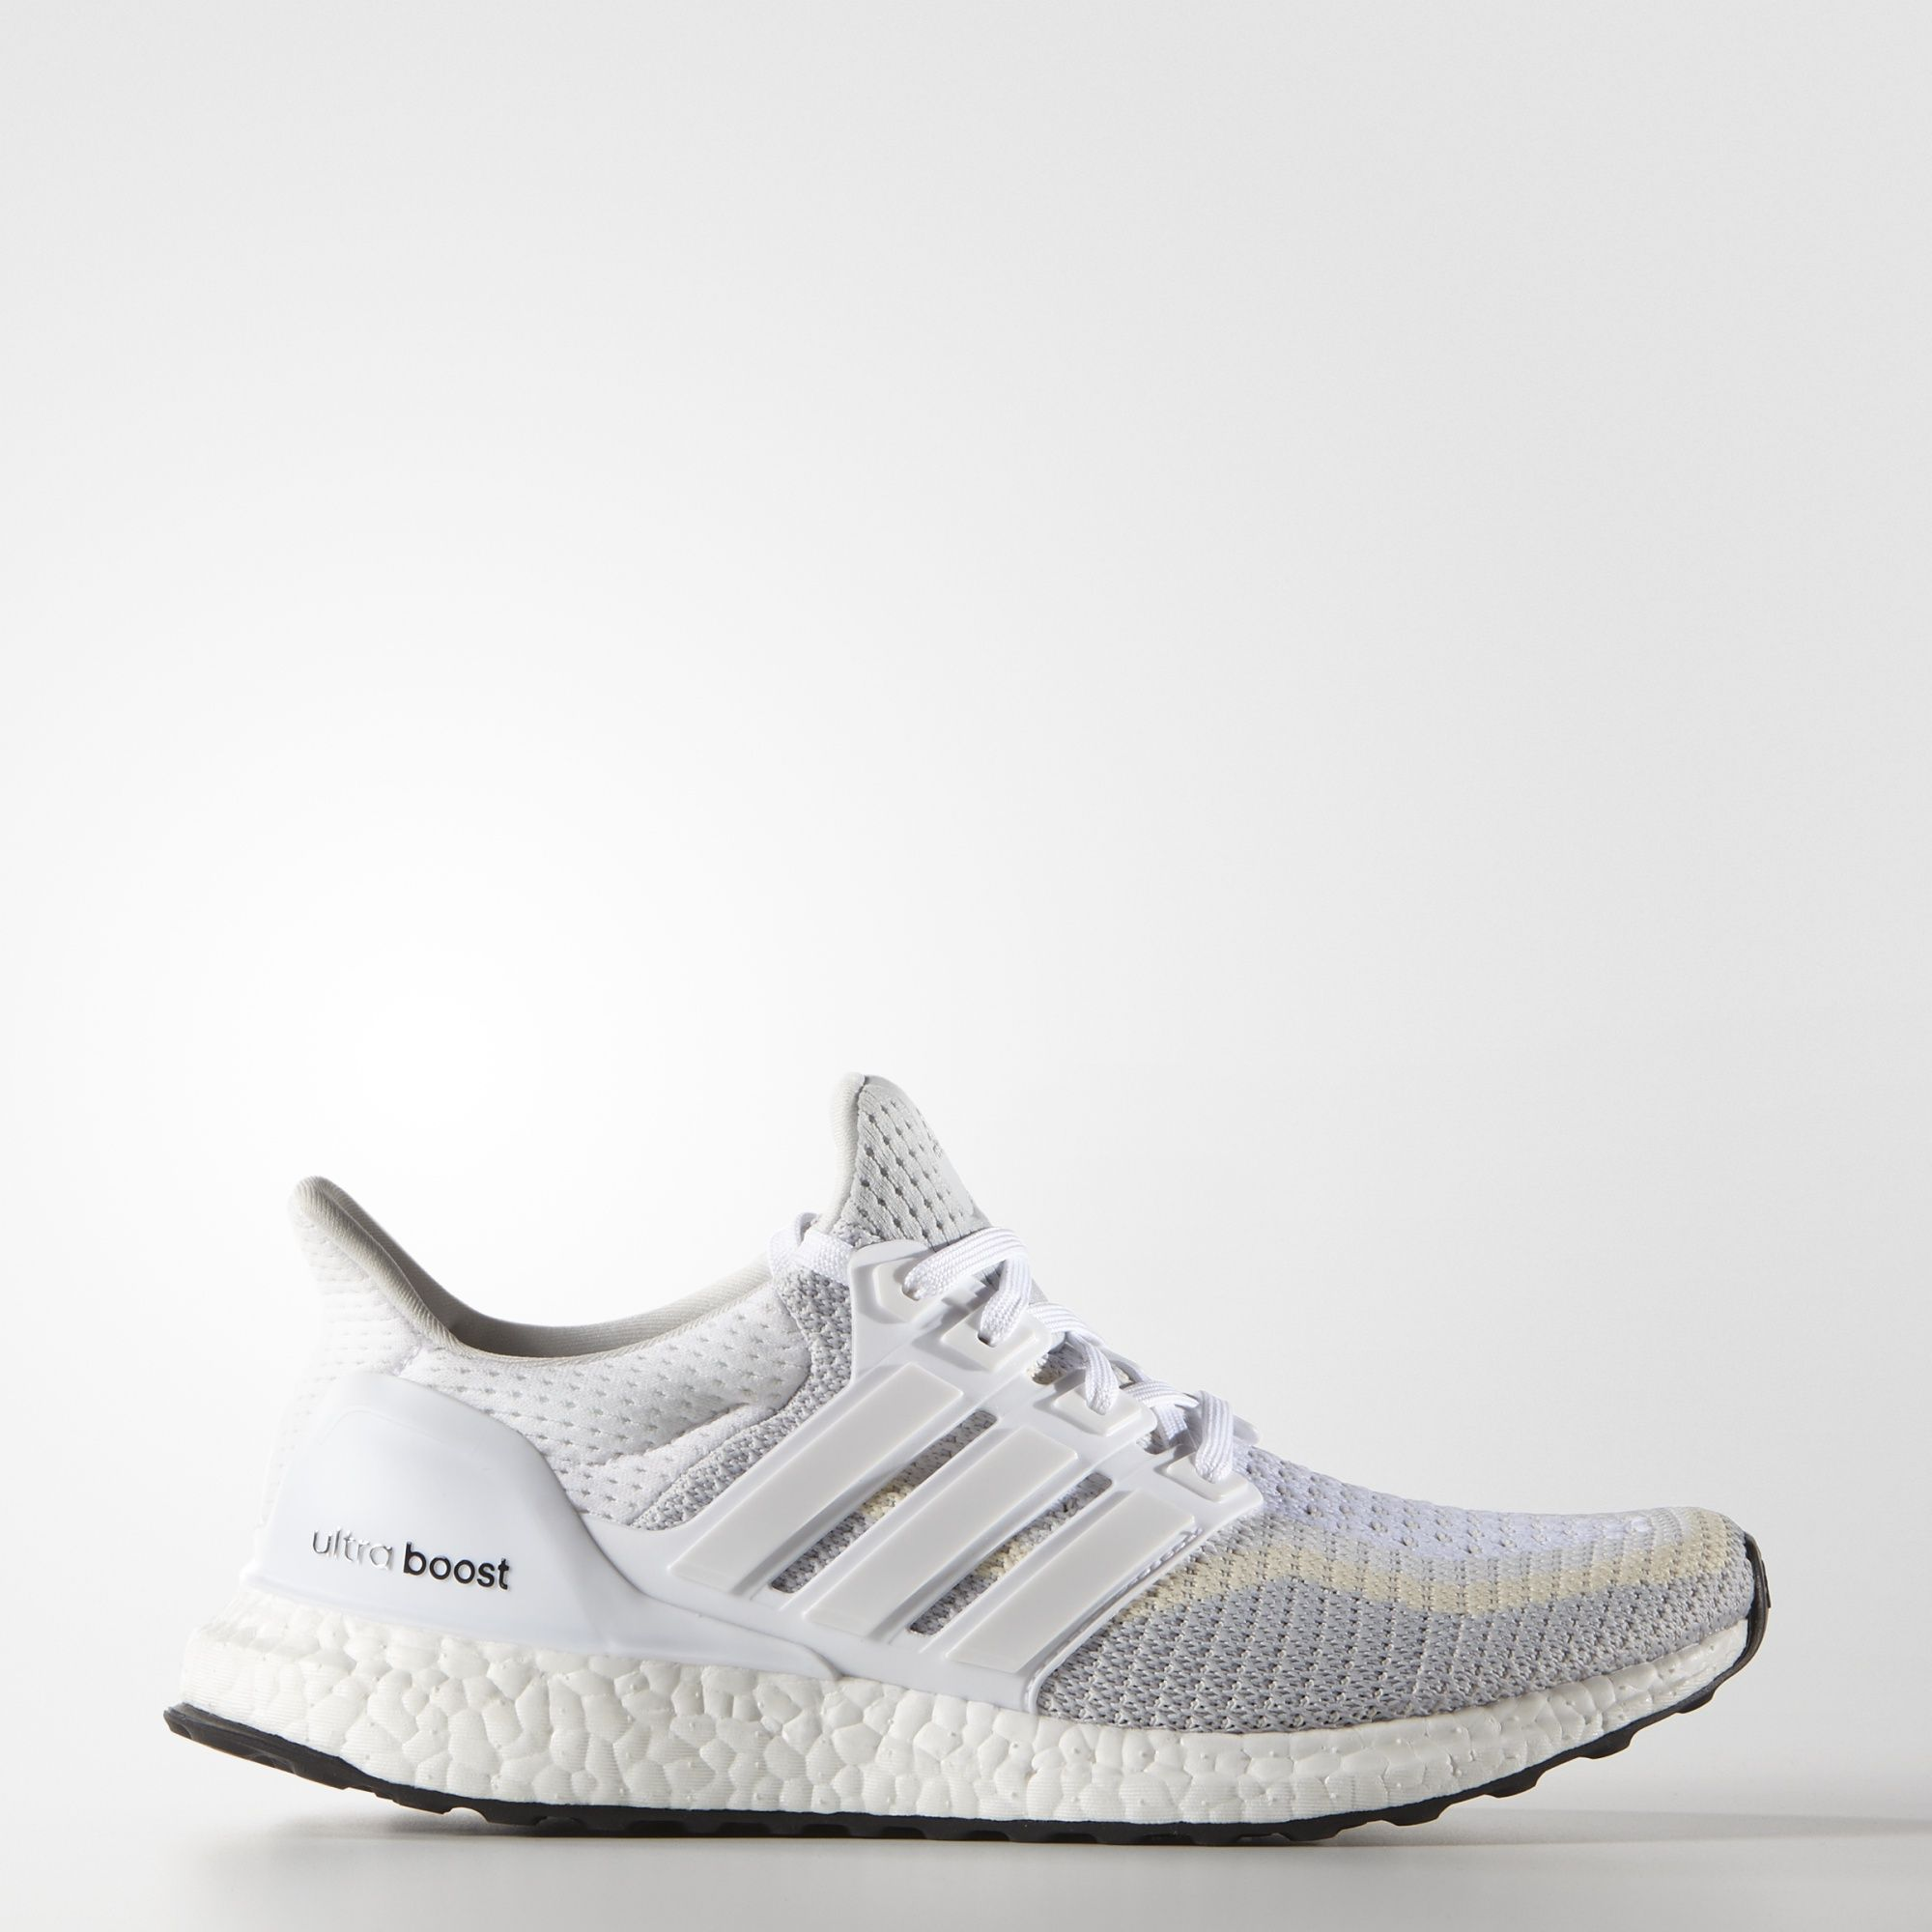 Also browse popular models like women's Ultra Boost, Alphabounce and more.